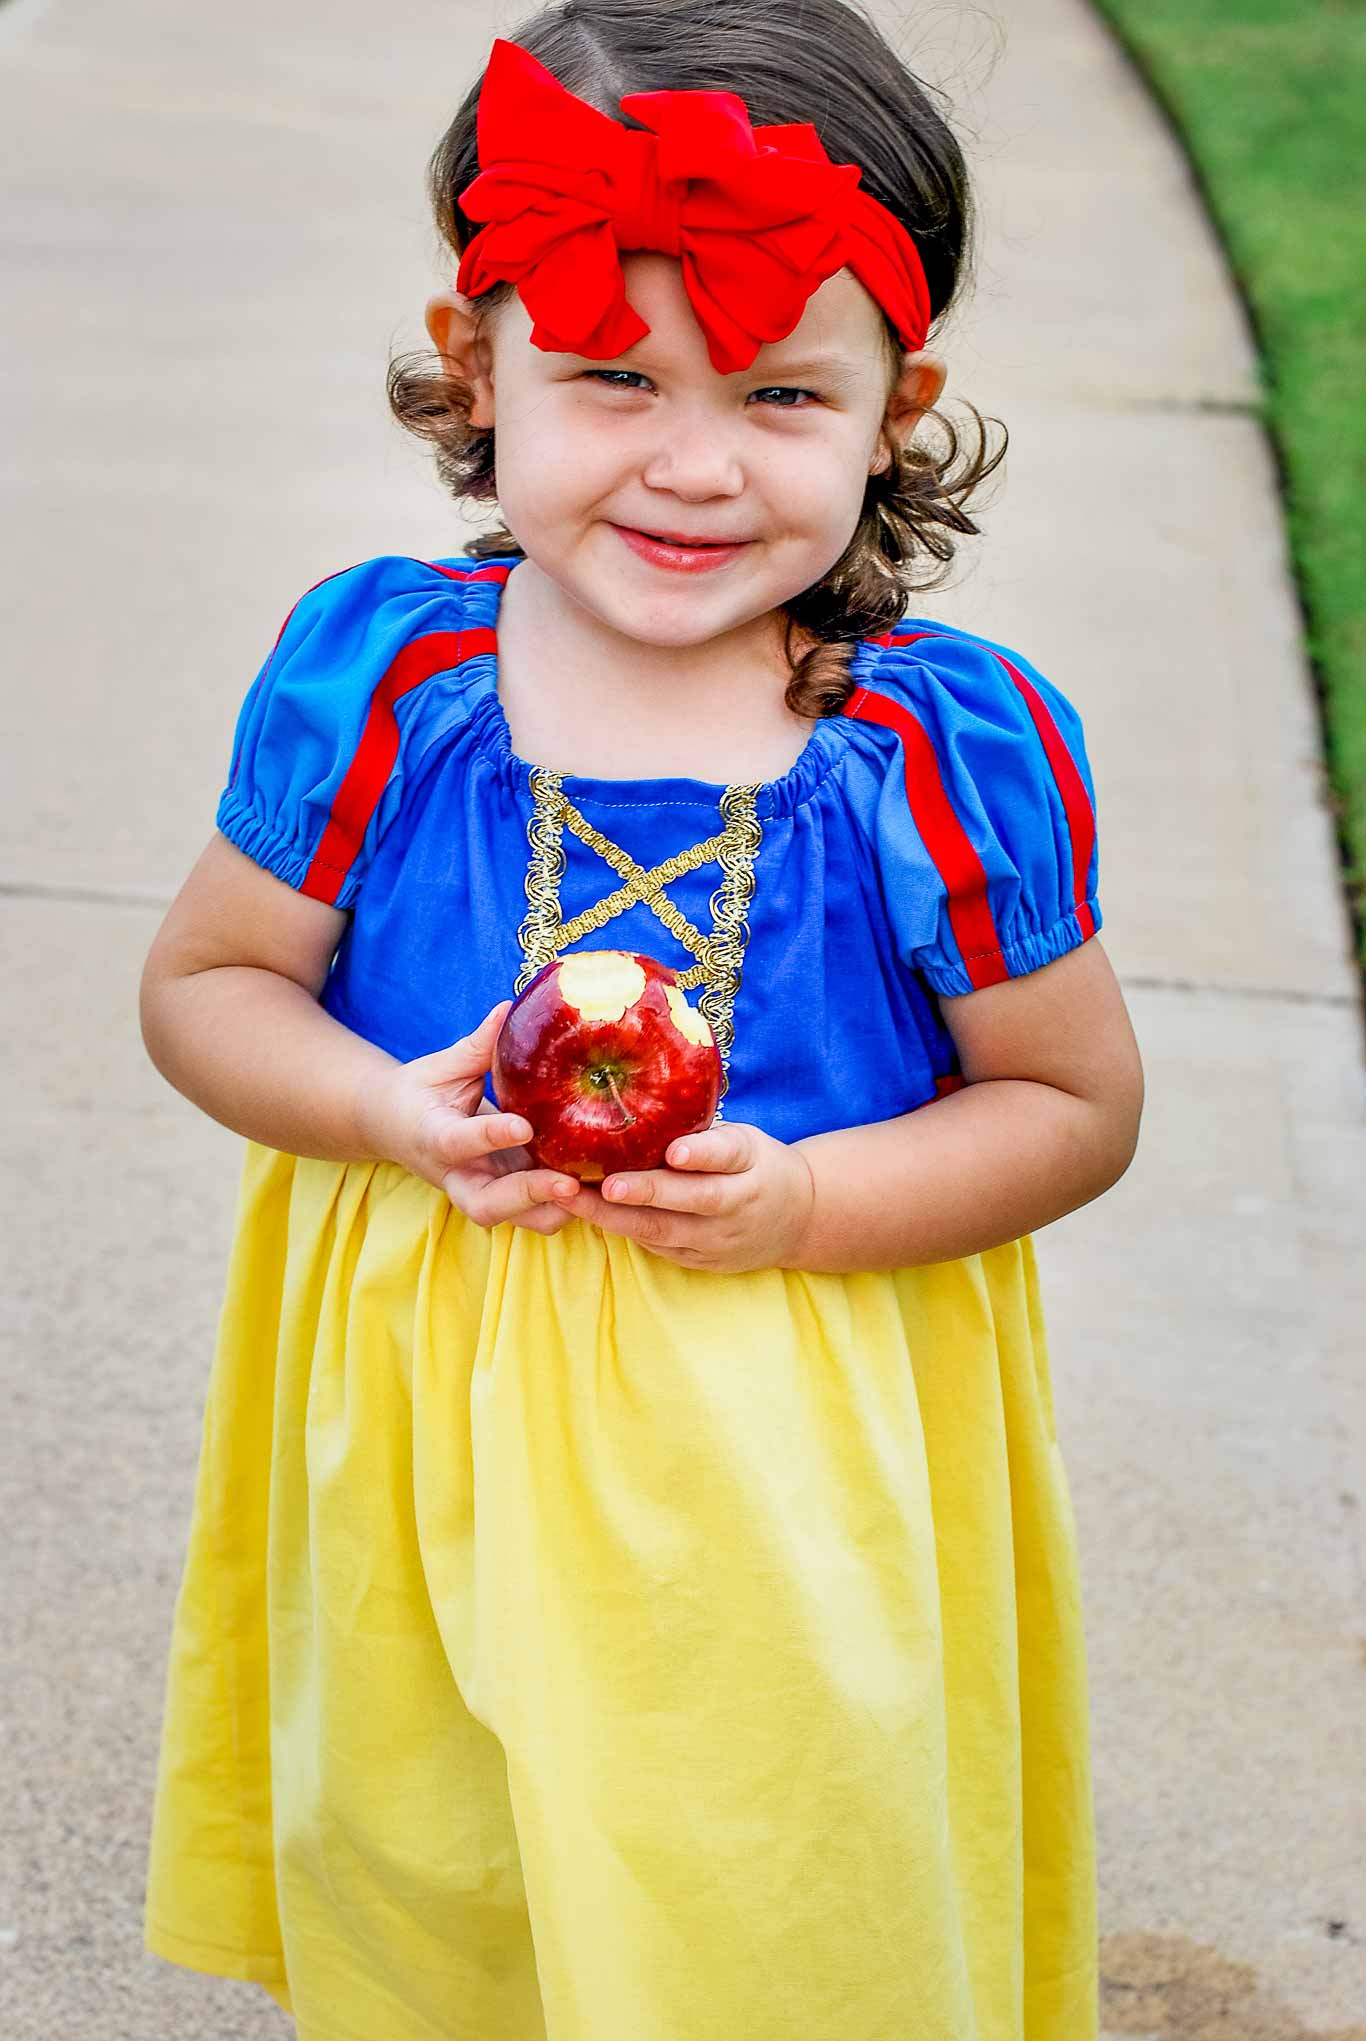 Easy To Sew Snow White Peasant Dress For Halloween Or Dress